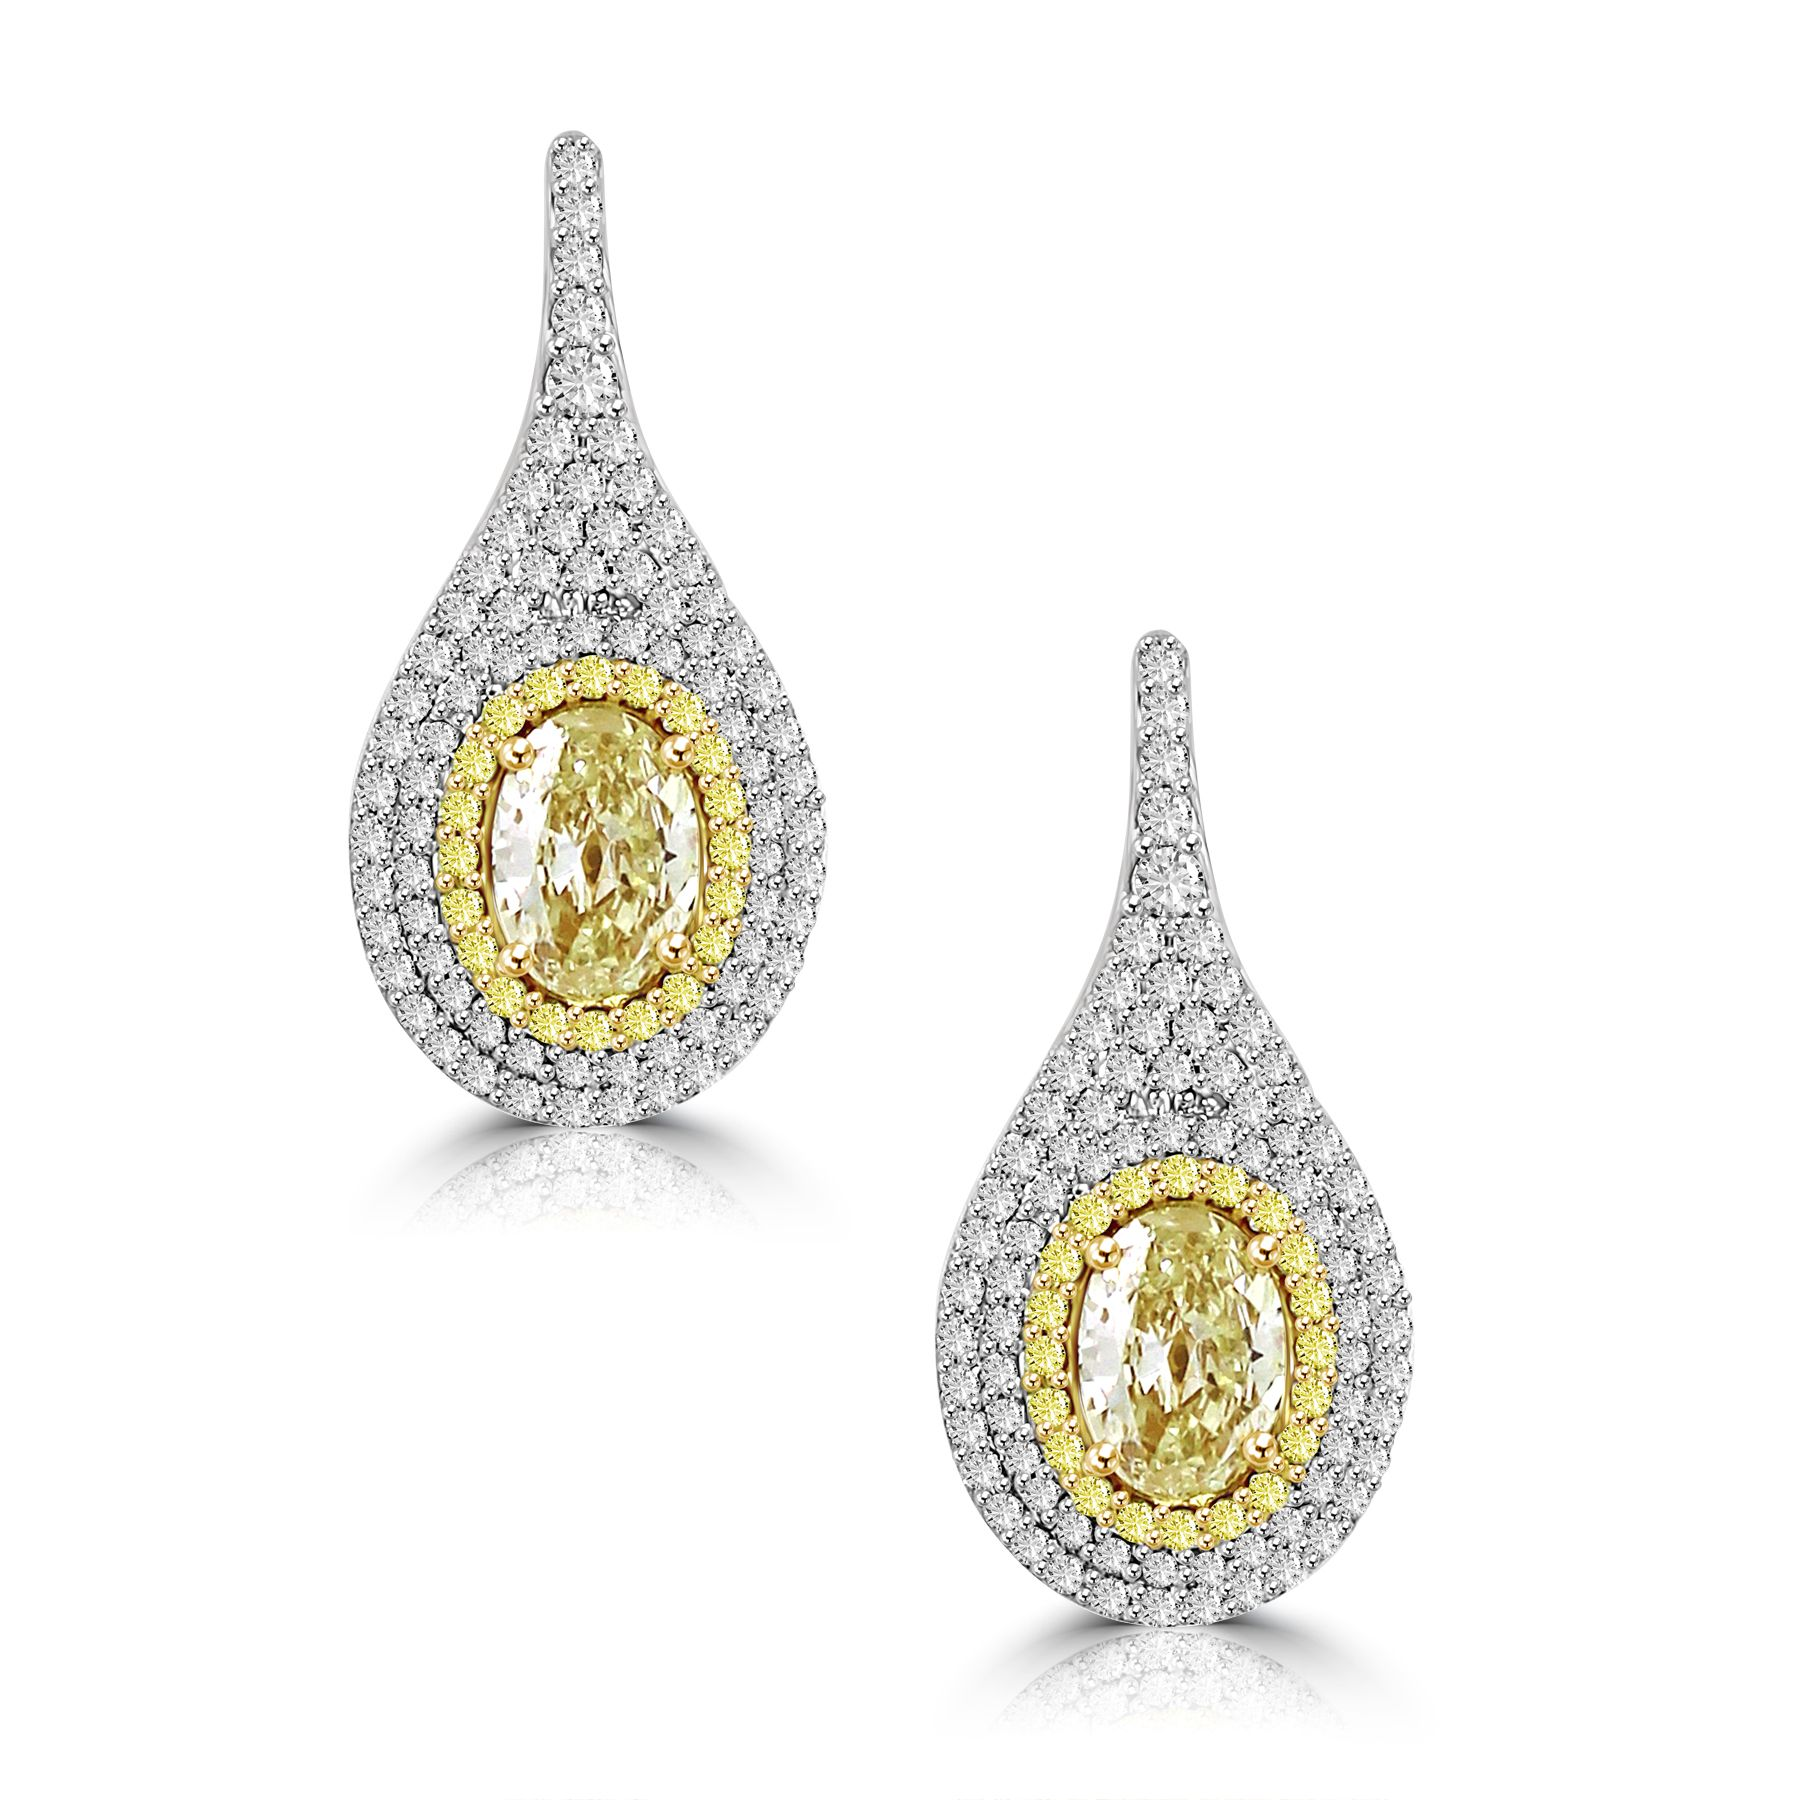 Natural Fancy Color Diamond Earrings with Oval Yellow Diamond in the Center Image